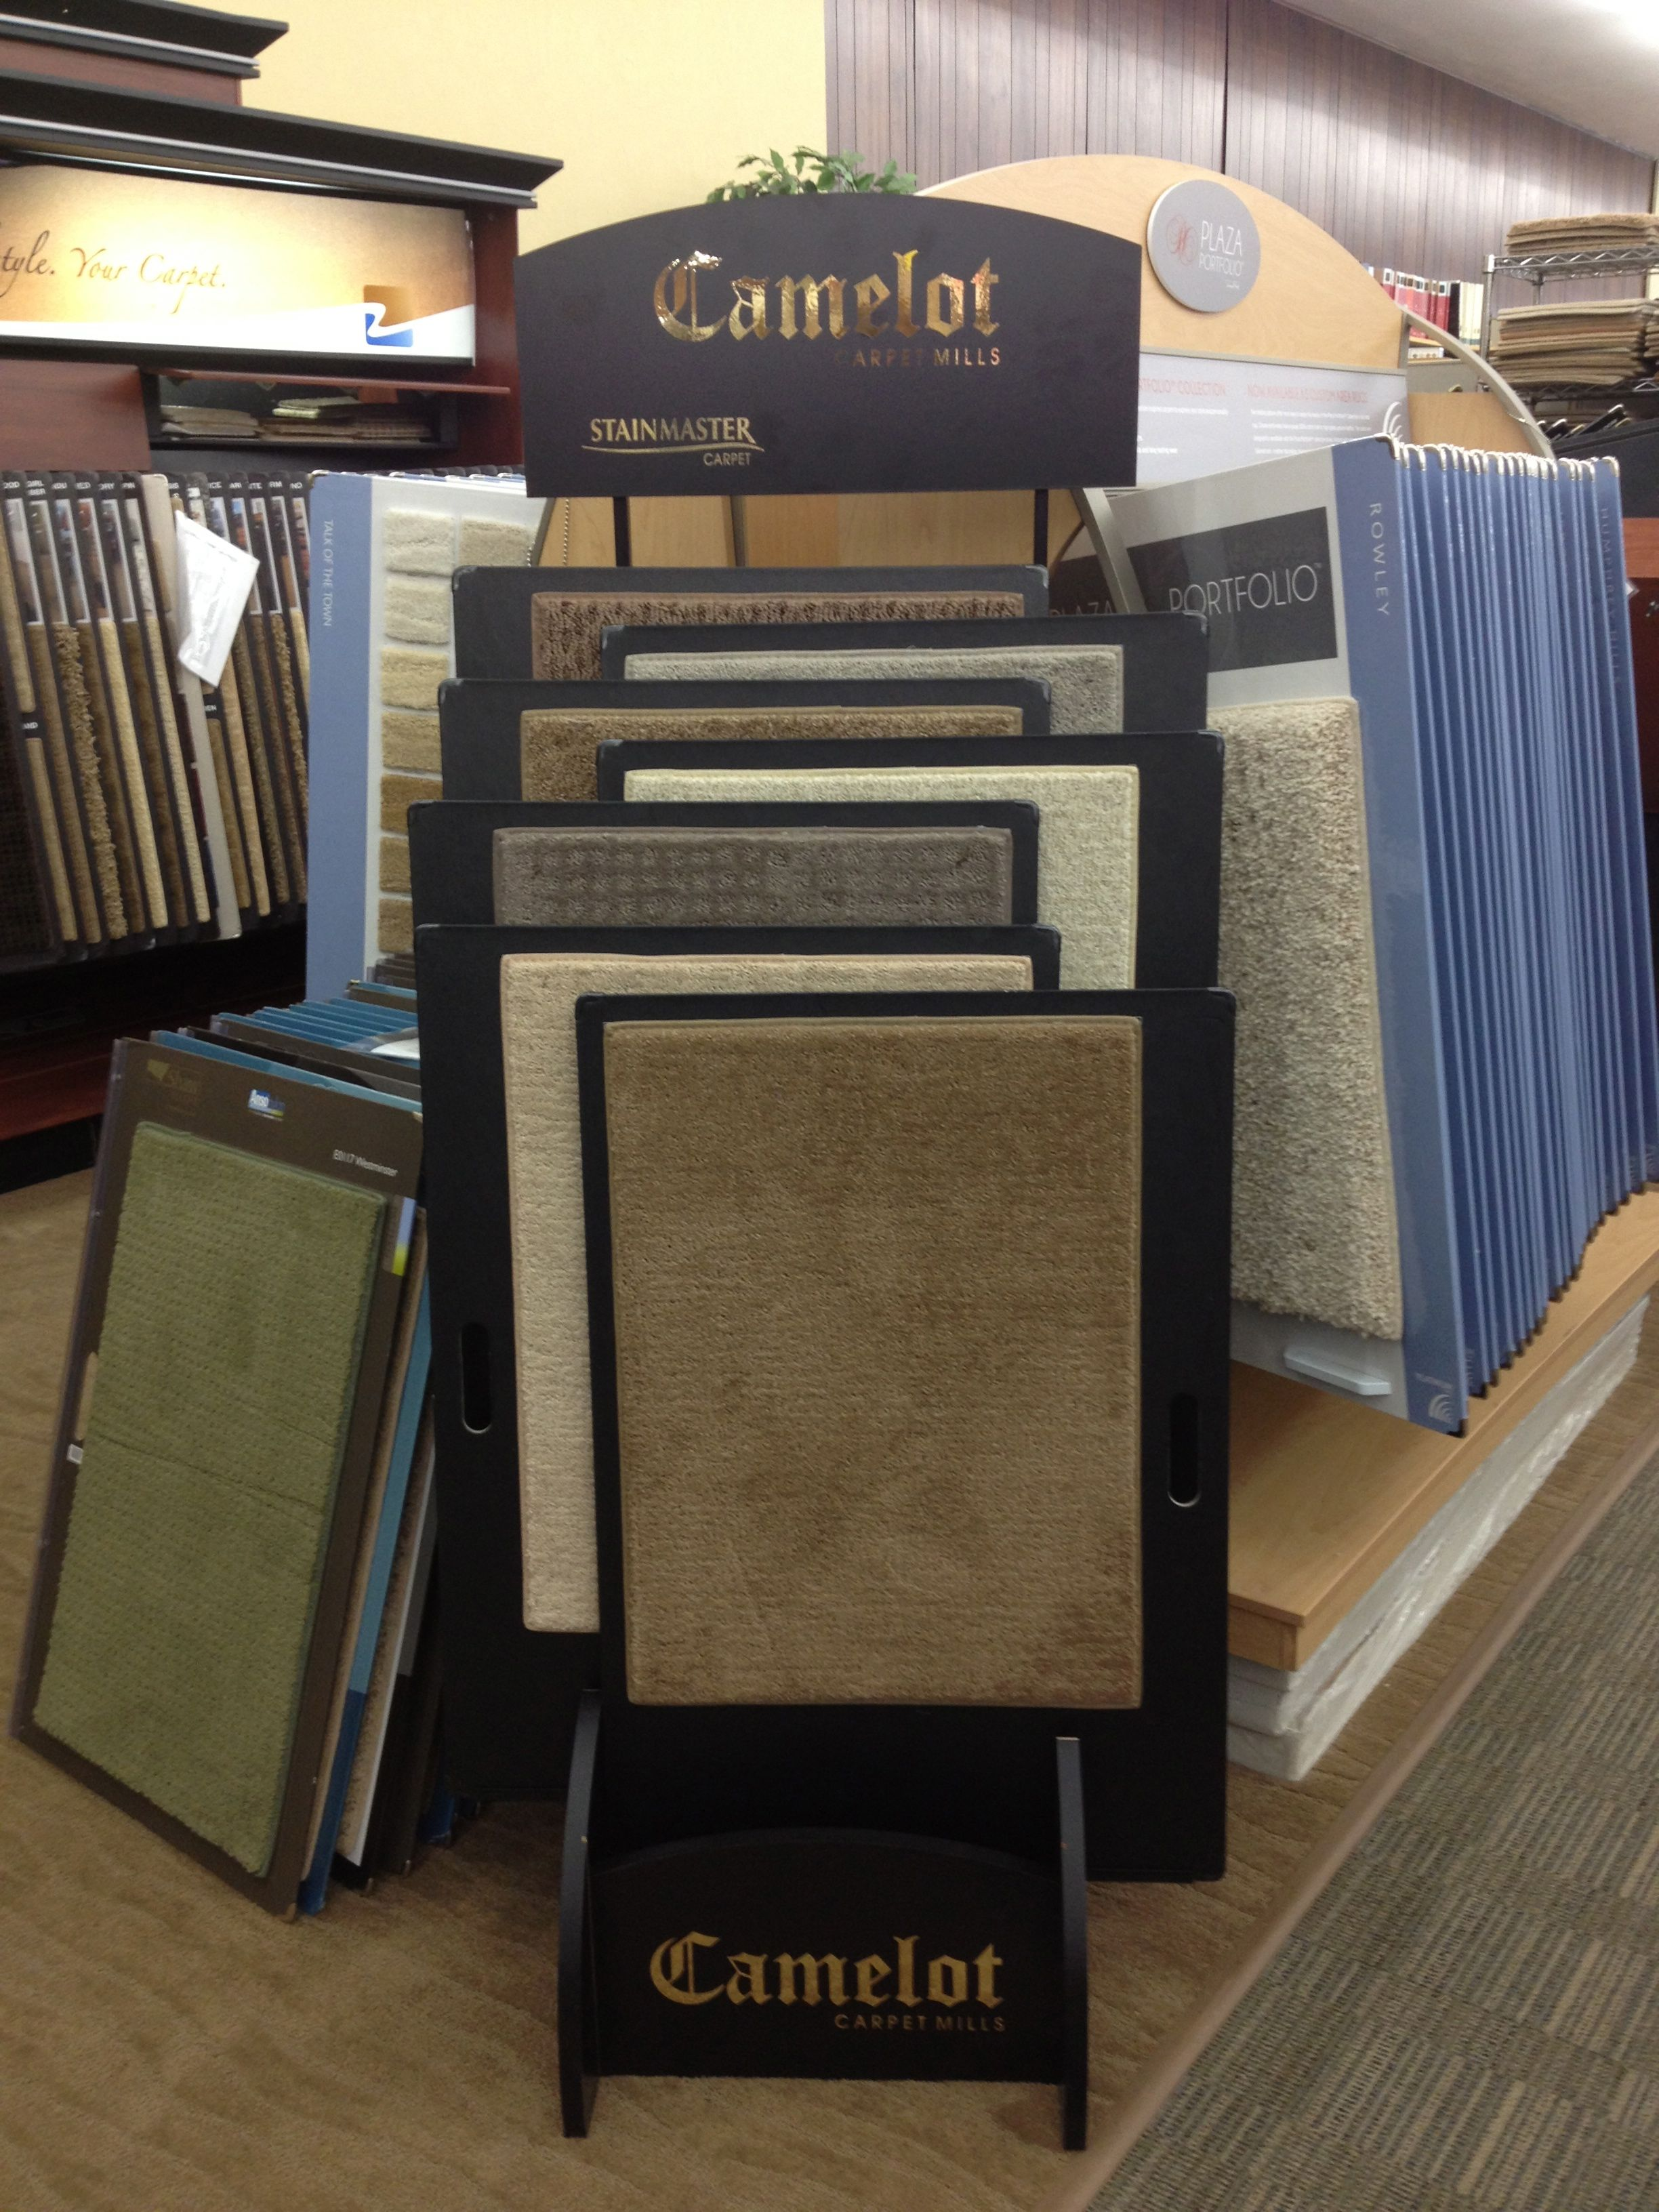 Hopkins Carpet One Royalty Amp Camelot Carpet Now Available